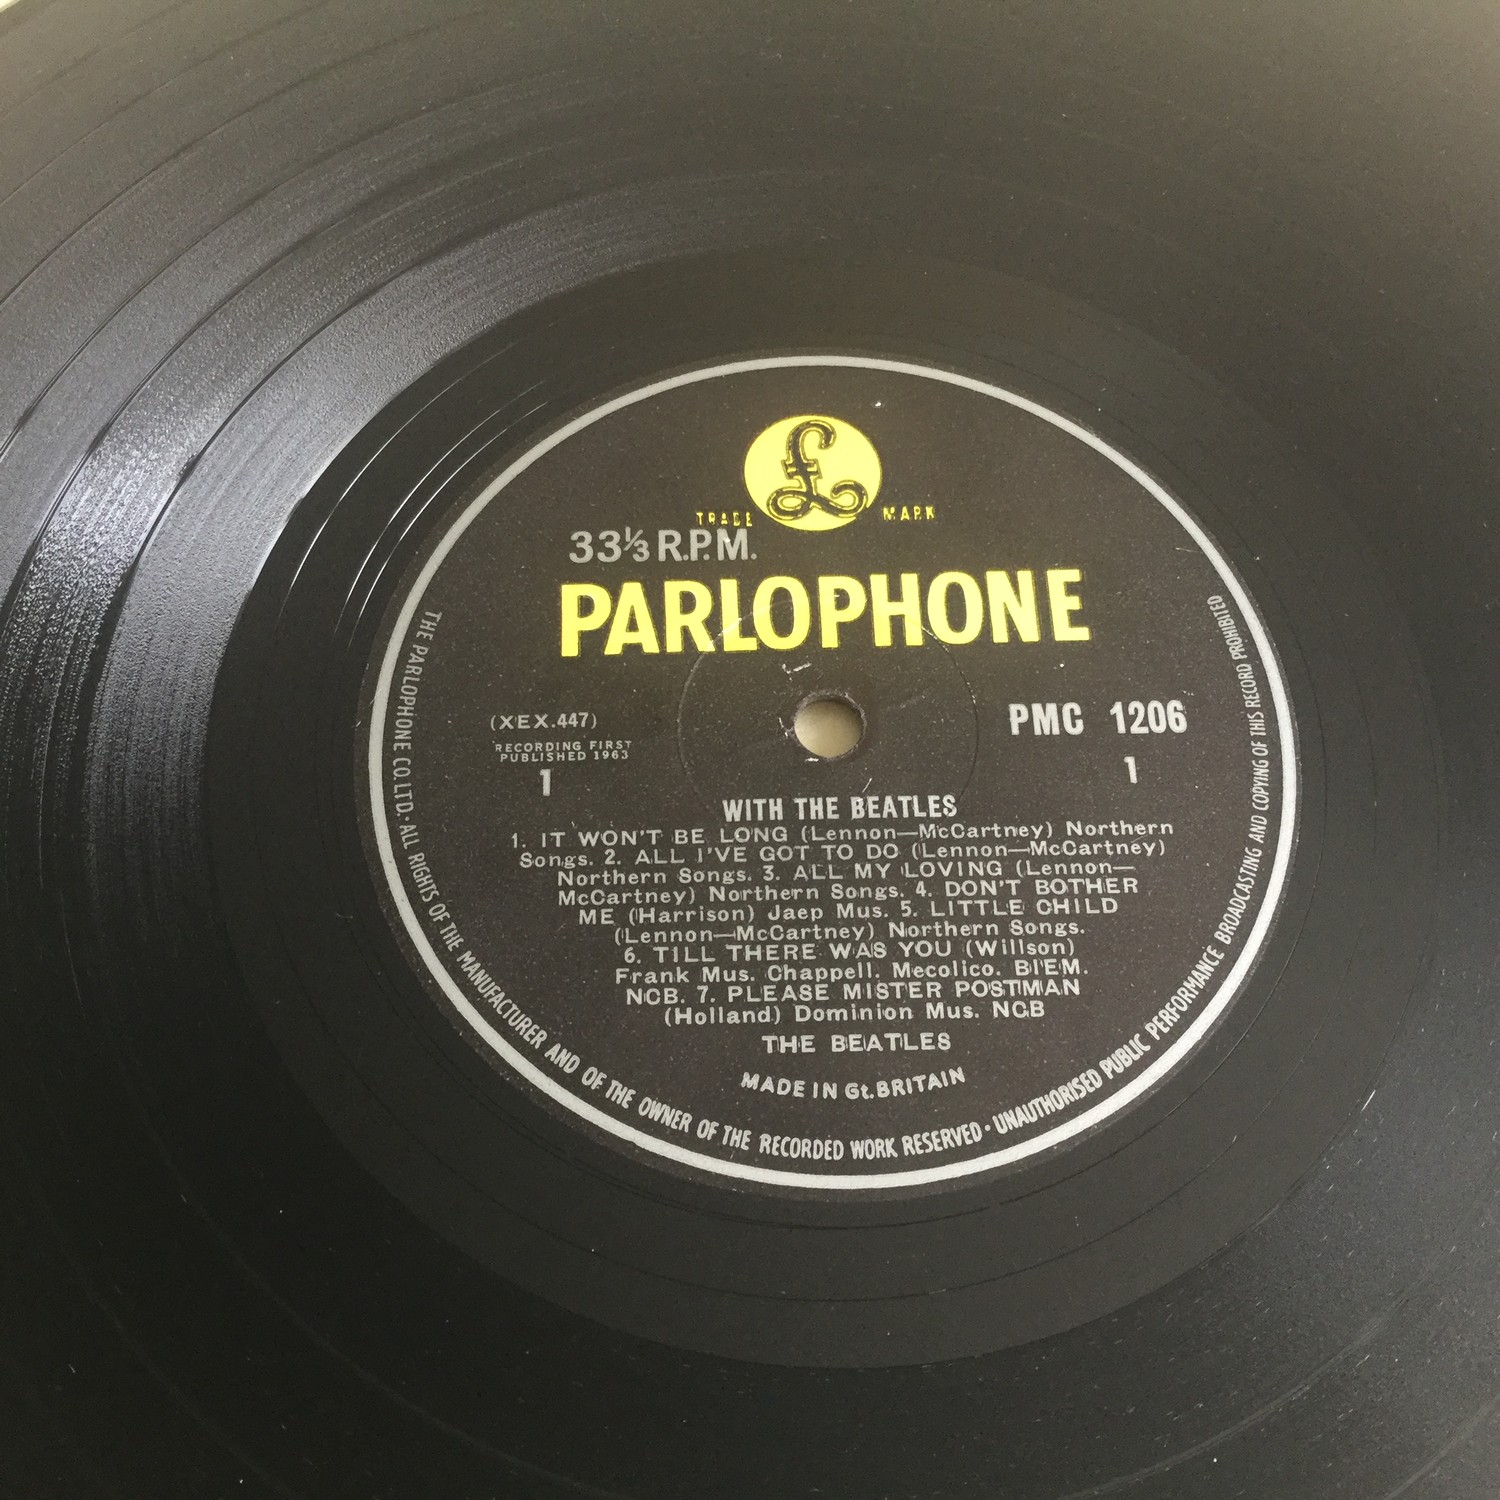 BEATLES 'WITH THE BEATLES' LP RECORD. Spelling mistake here on side 2 label with 'Got A' instead - Image 4 of 4